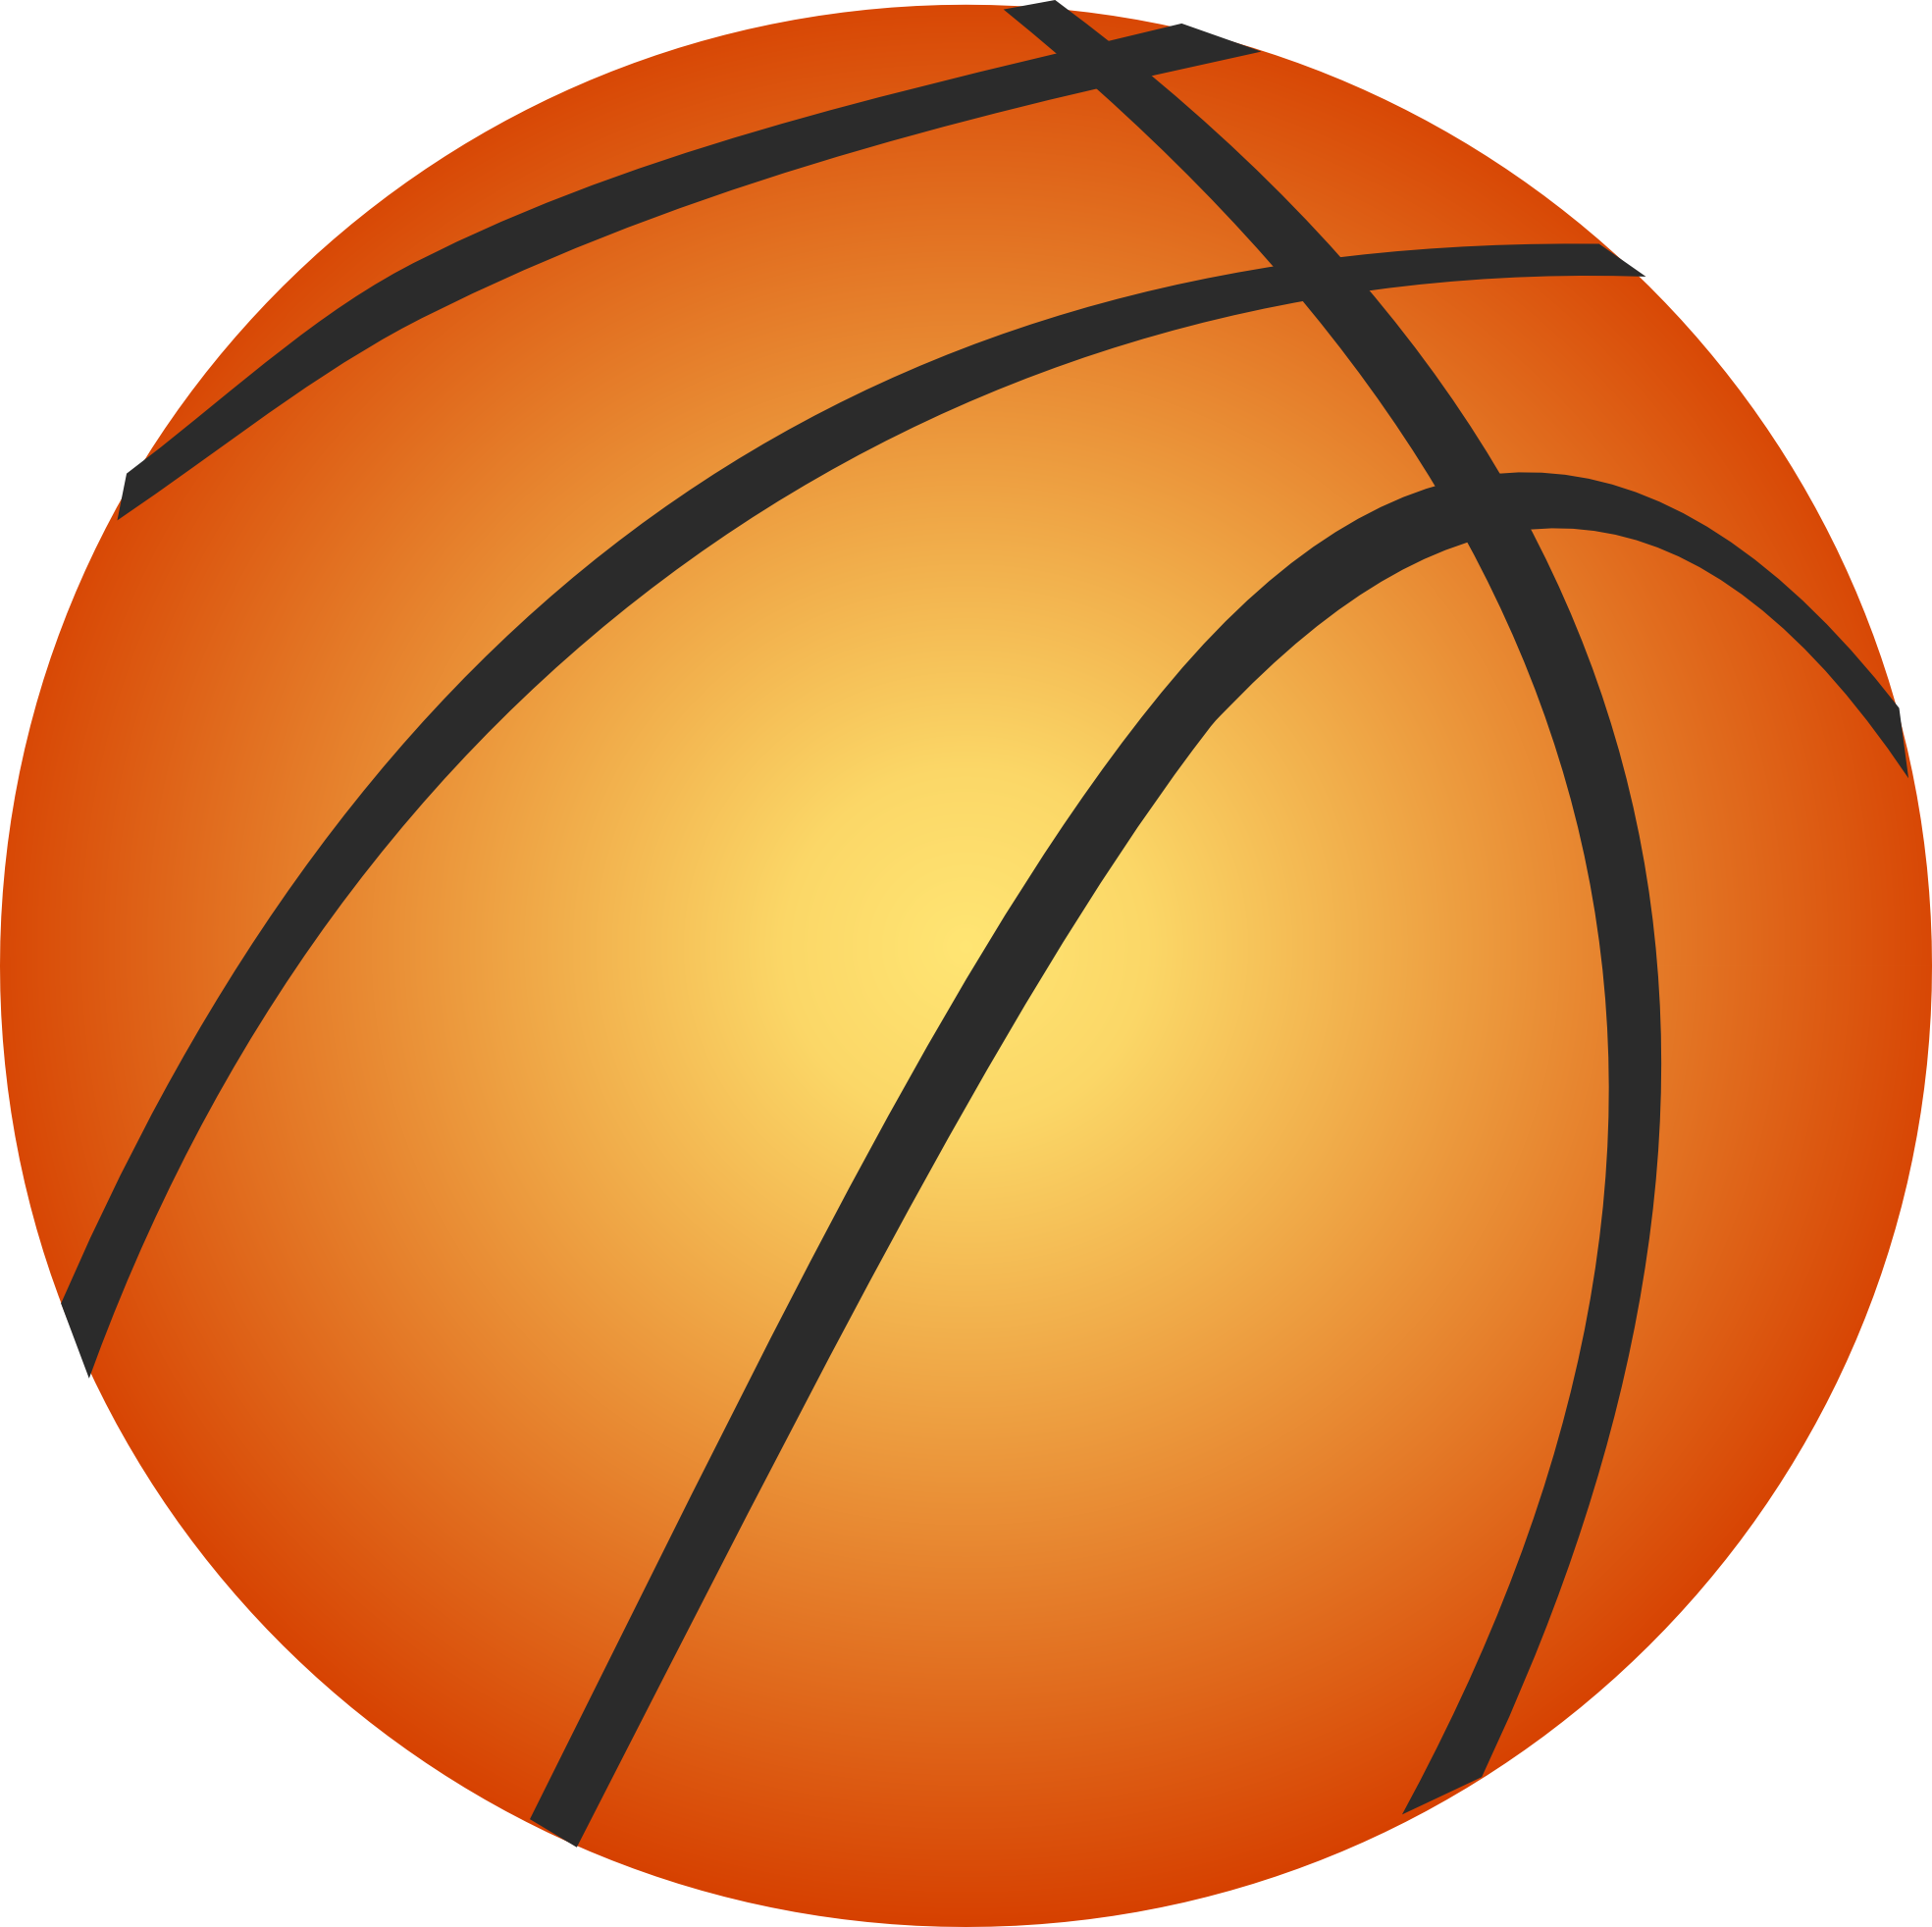 Passing a basketball clipart vector freeuse stock Clipart Basketball - clipart vector freeuse stock